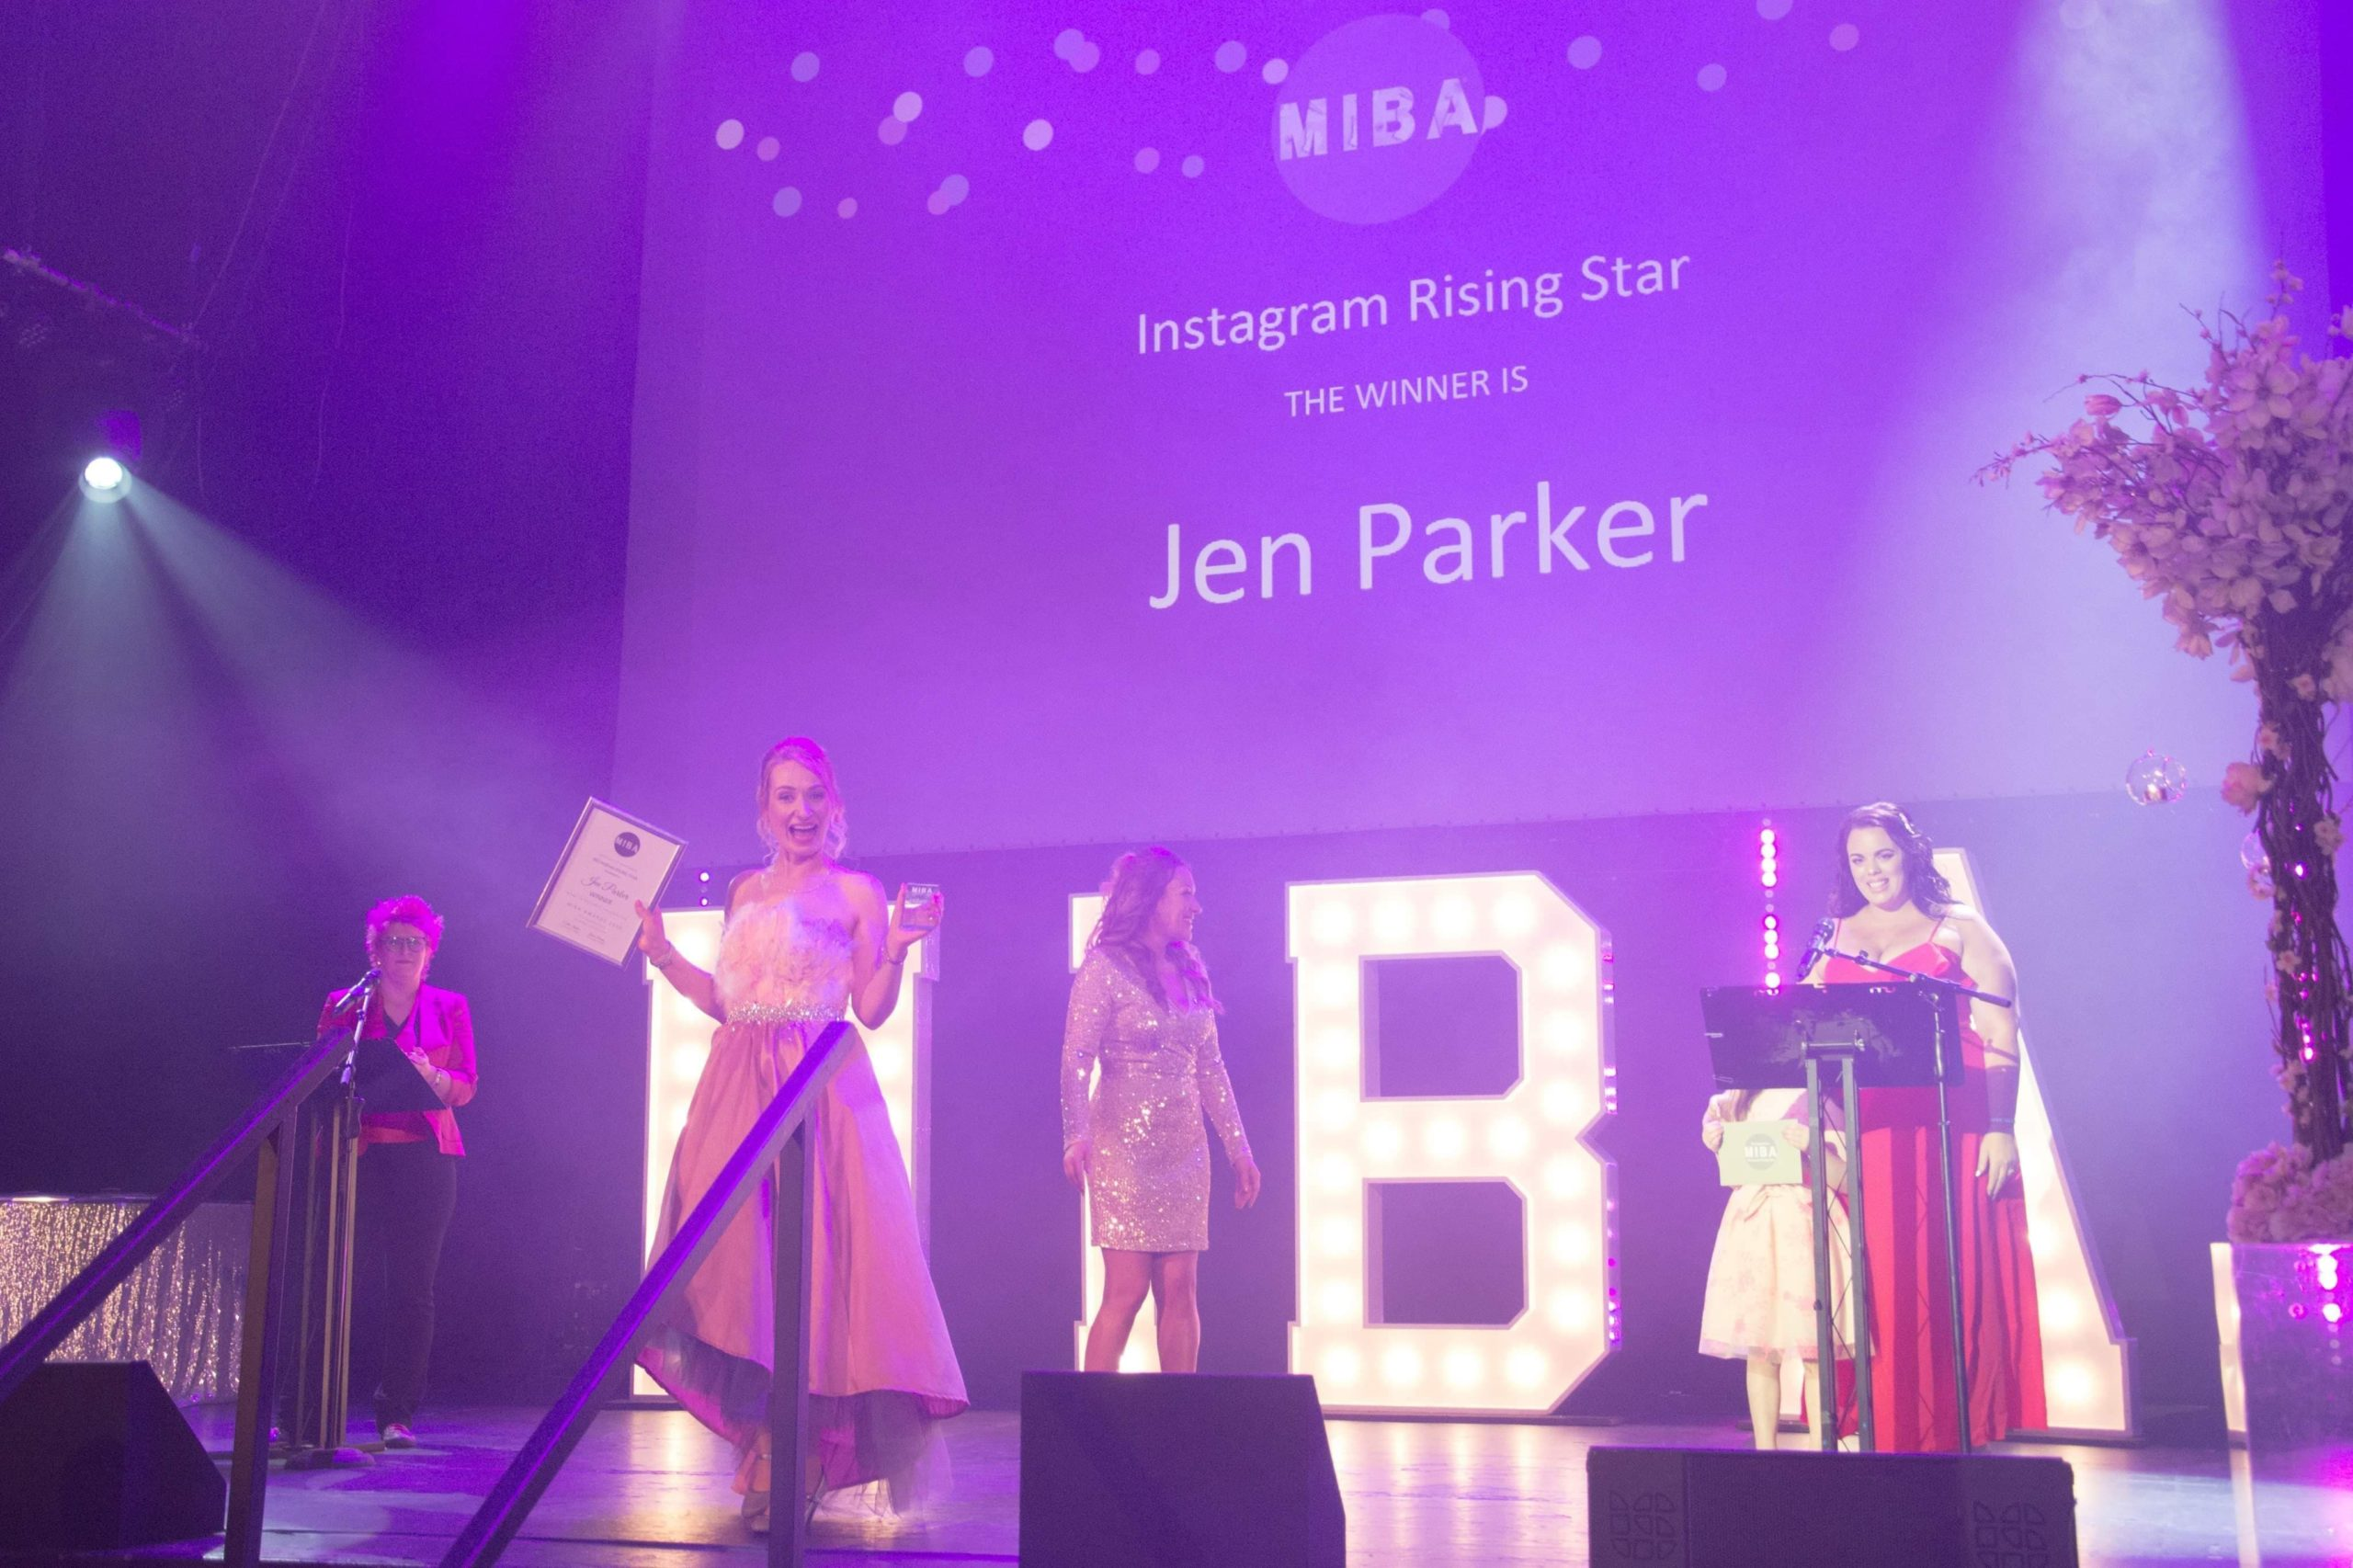 Jen Parker of Fuzzy Flamingo | WINNER of the 'Instagram Rising Star' award in 2020